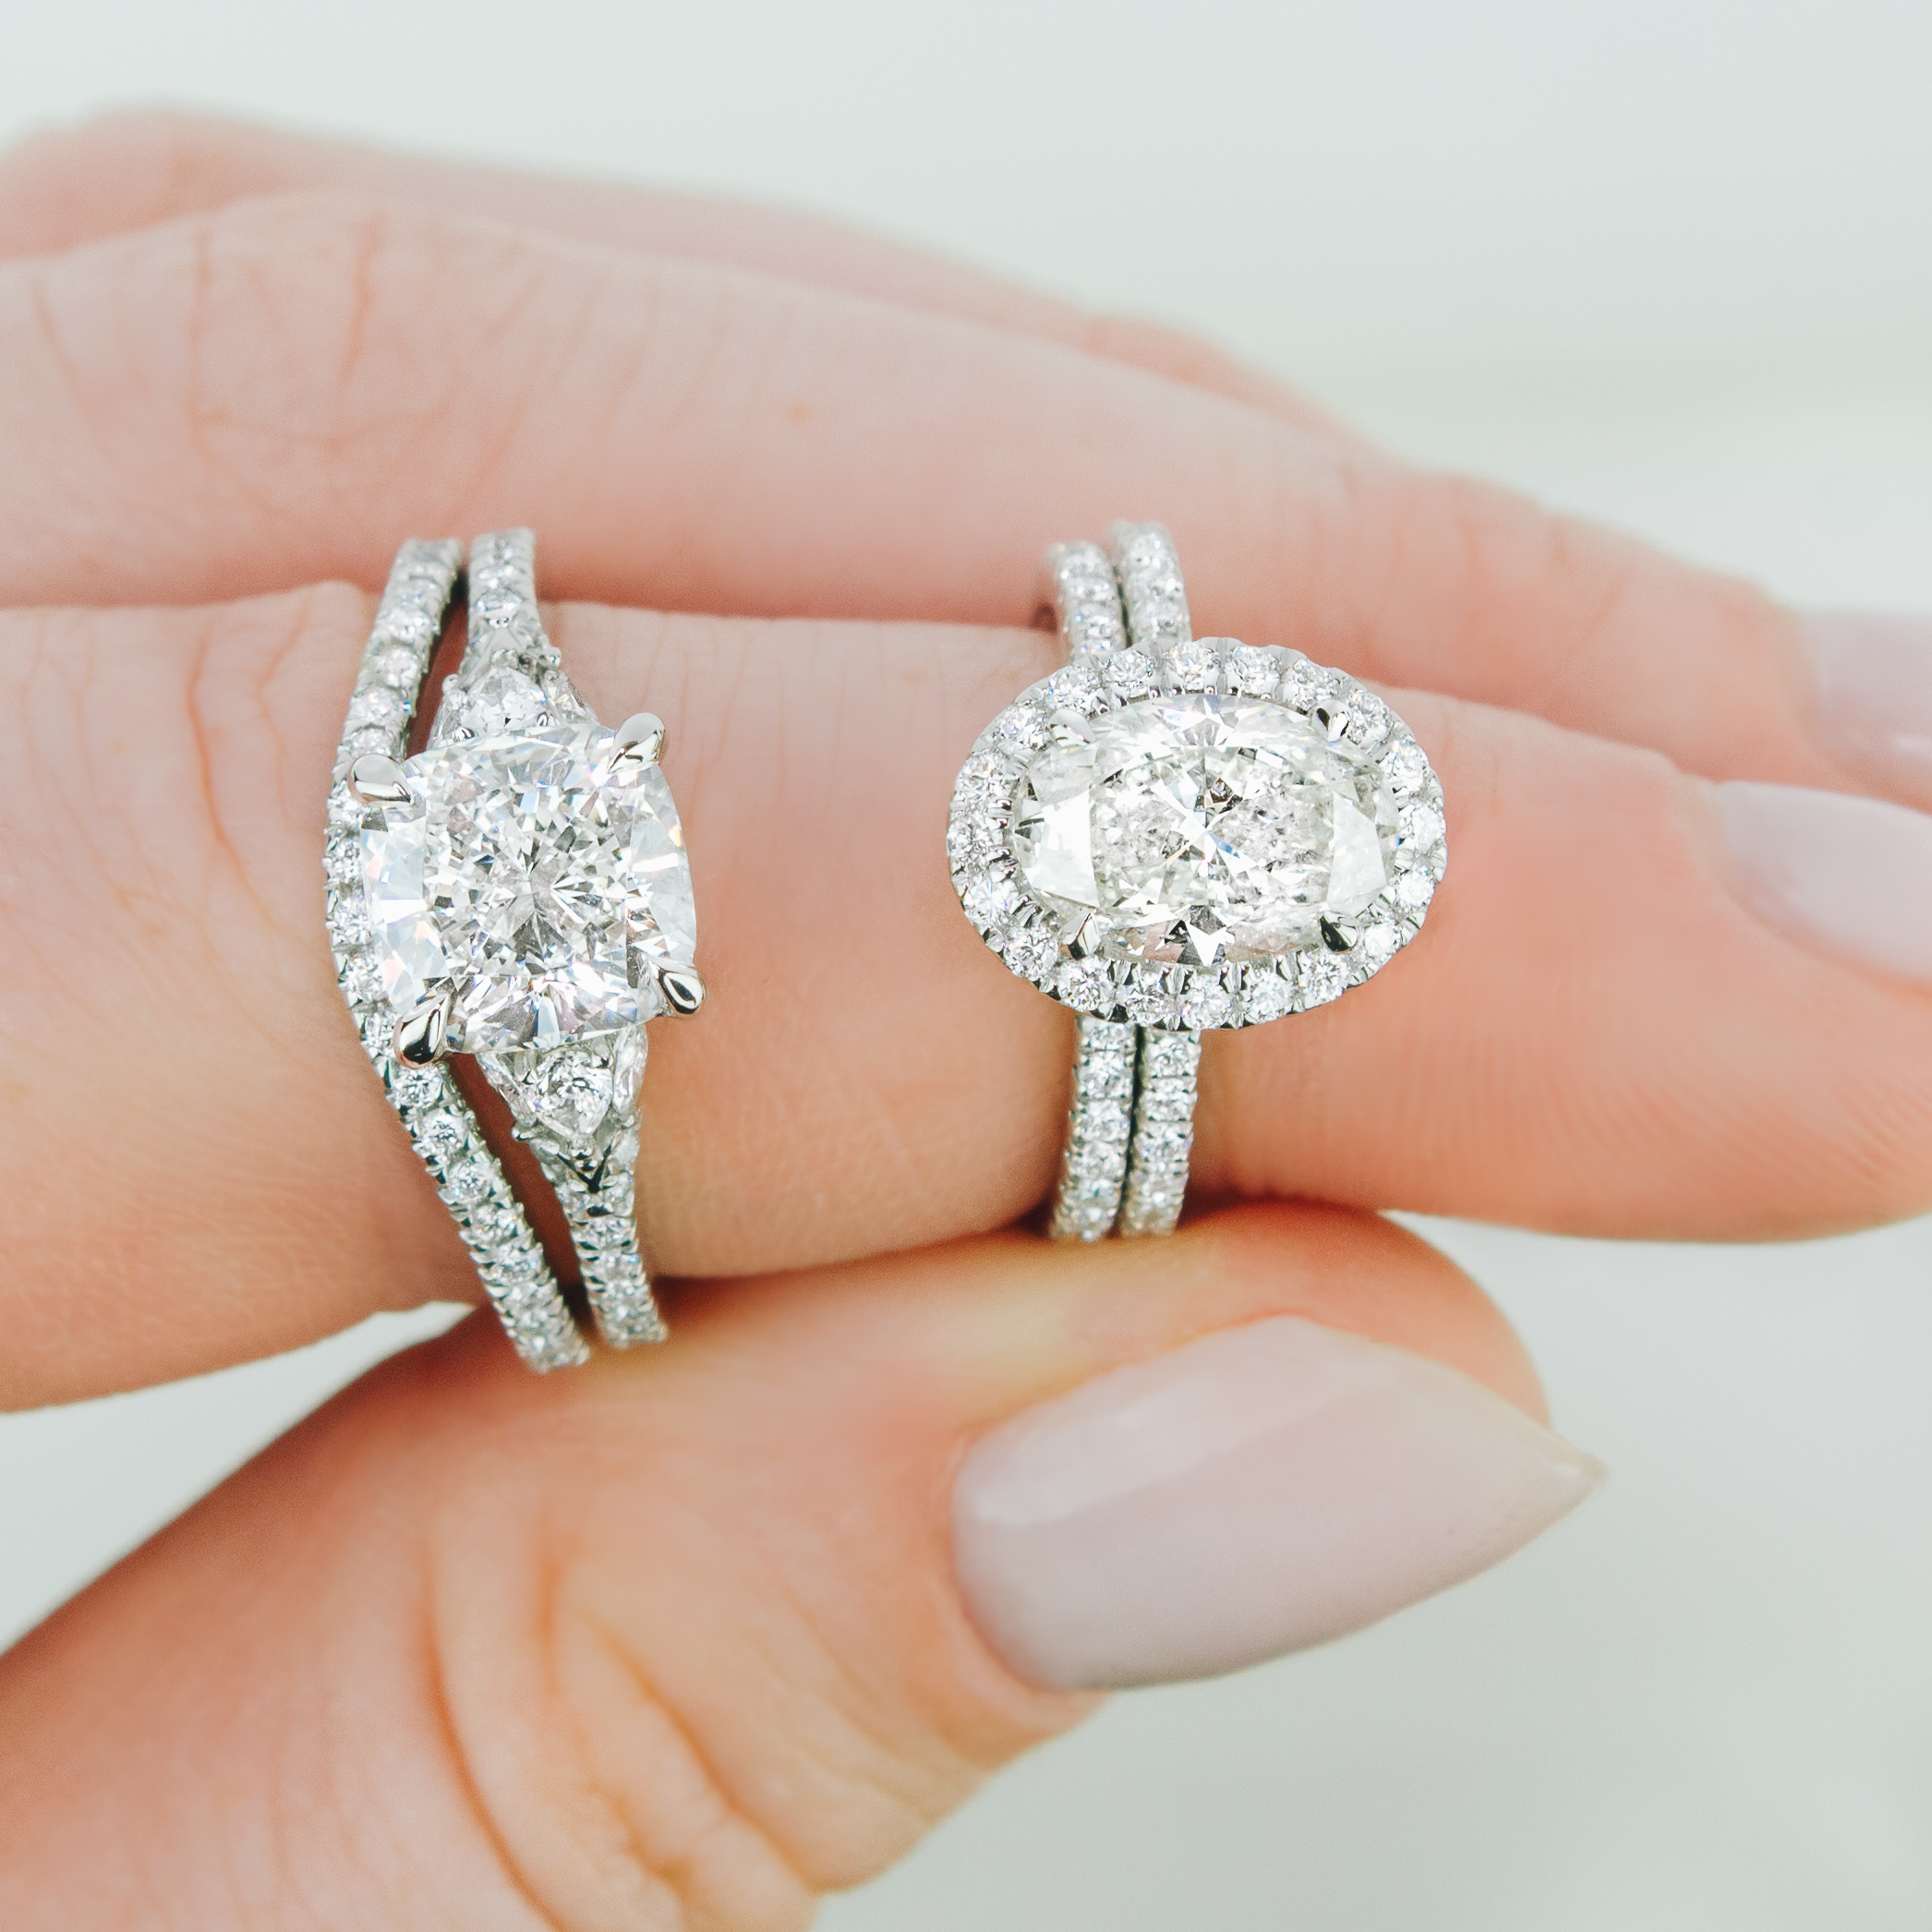 Unique Engagement Rings With Side Stones Intended For Best And Newest Round And Baguette Diamond Vintage Style Anniversary Bands In White Gold (View 18 of 25)